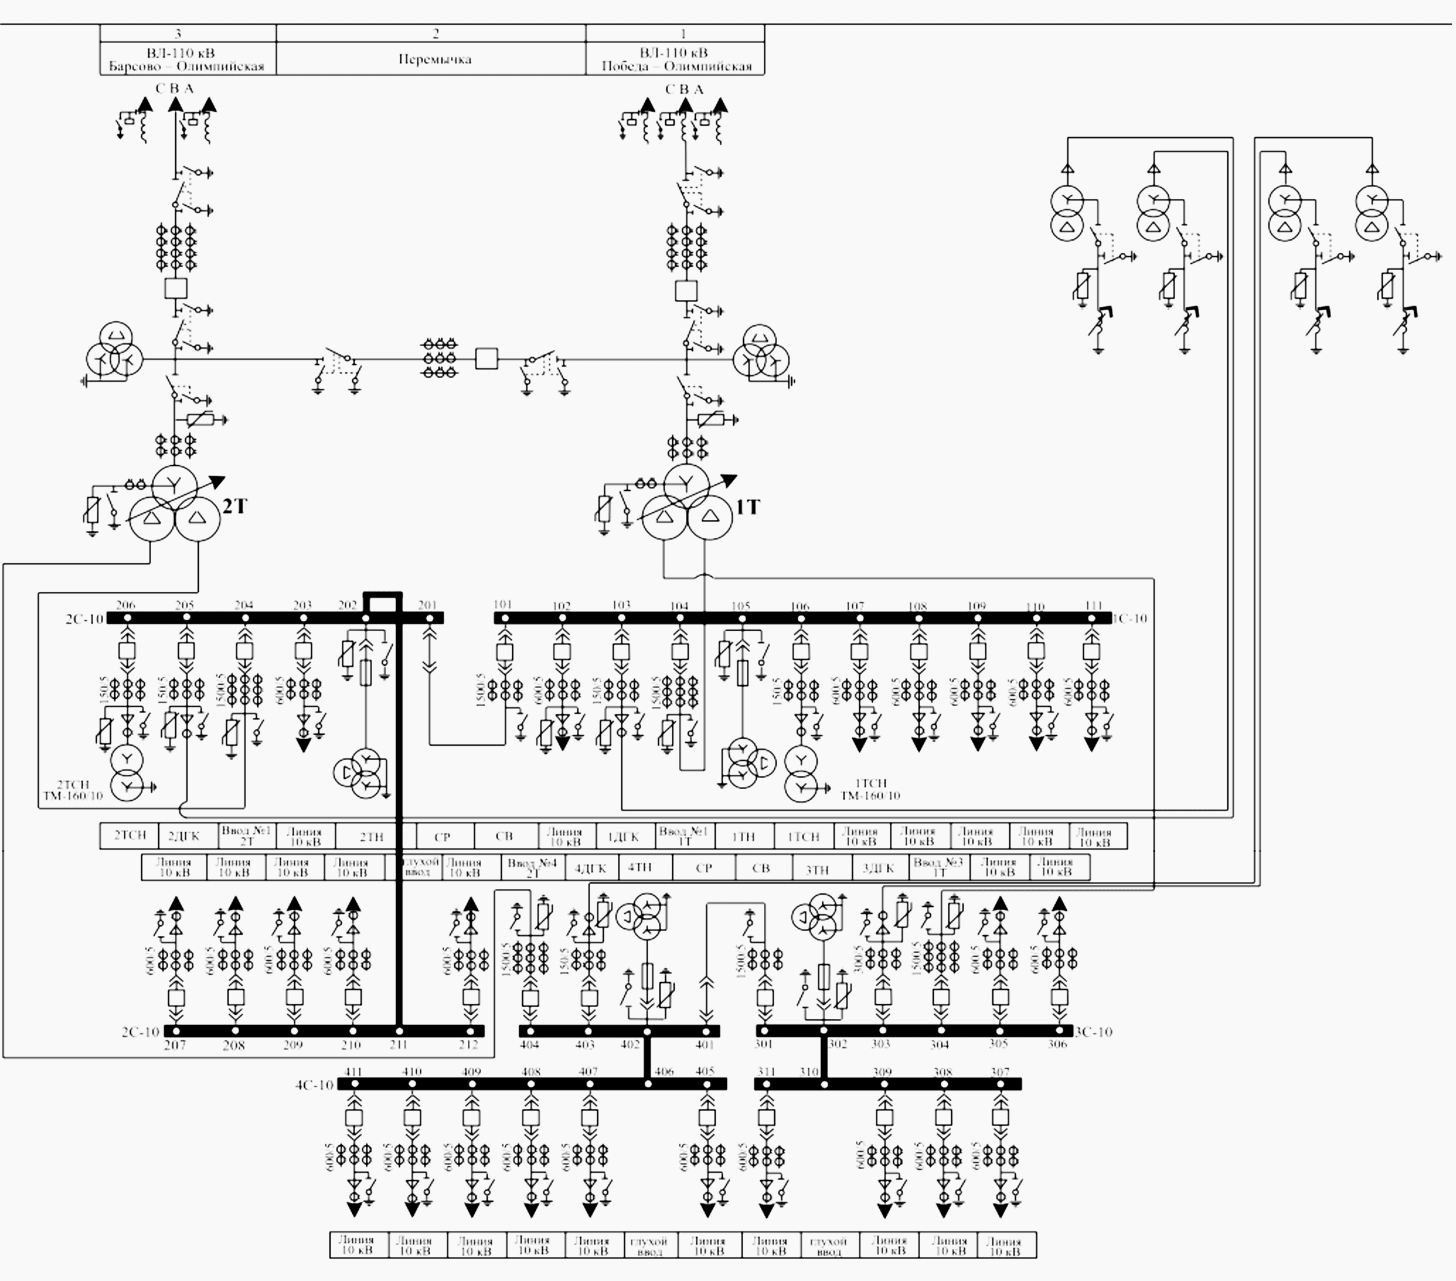 electrical one line diagram software 2000 ford ranger engine 110 10 kv substation with centralized protection